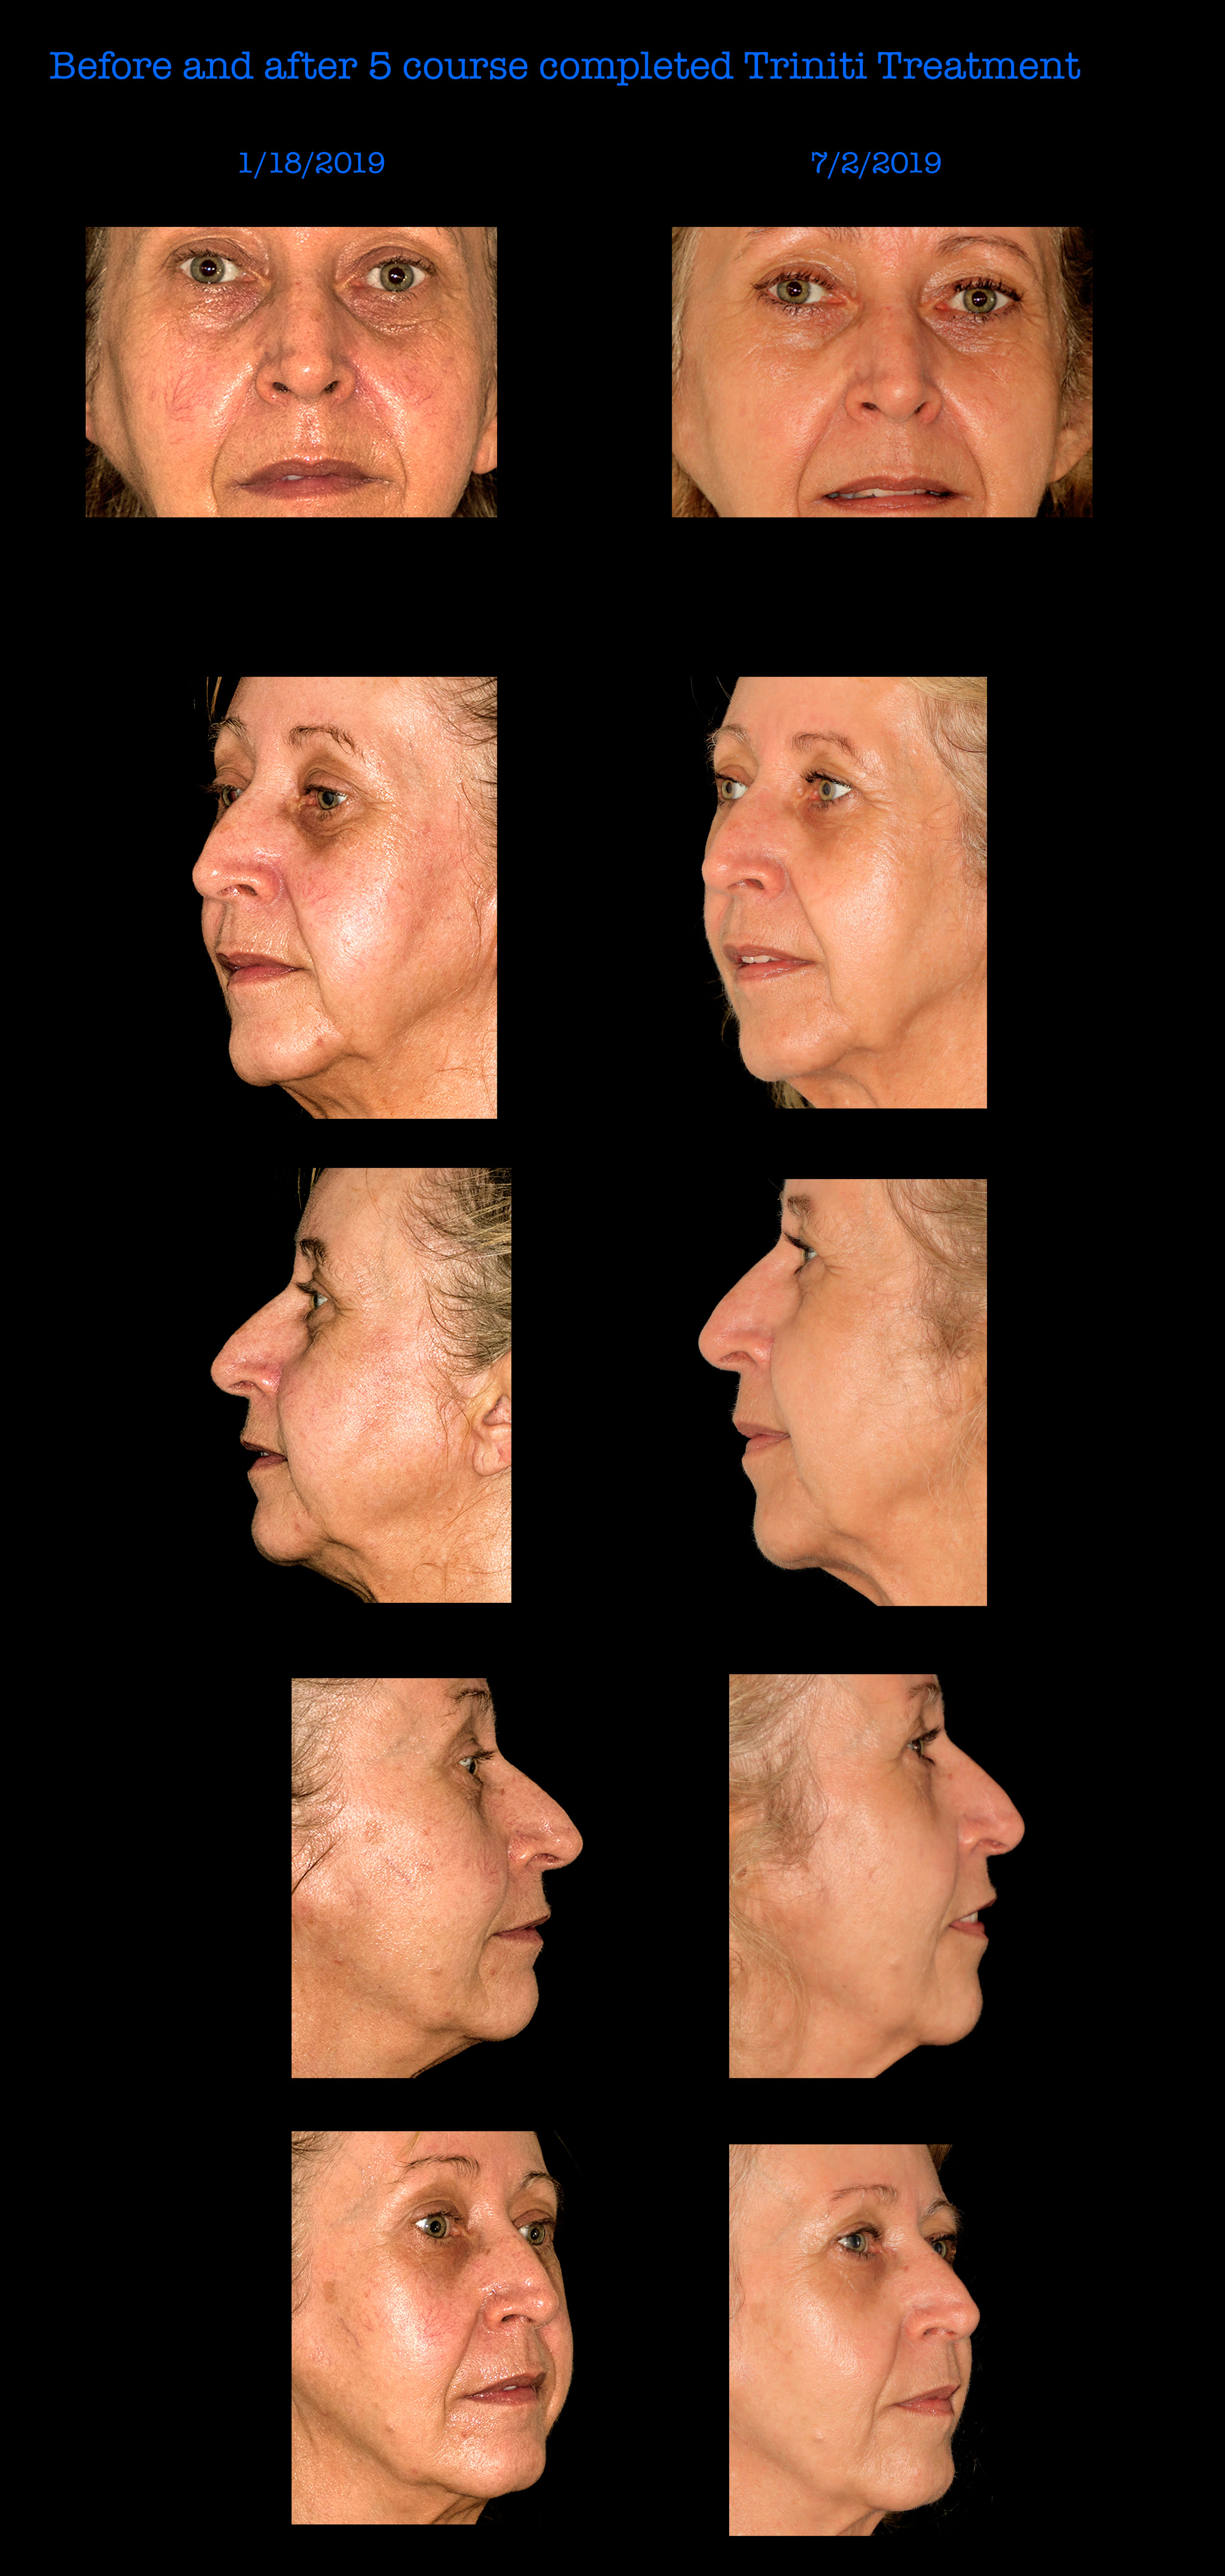 Before and After 5 Course Completed Trinity Treatment with our elos Machine, available at Mooney and Berry Gynecologists in Hammond, LA